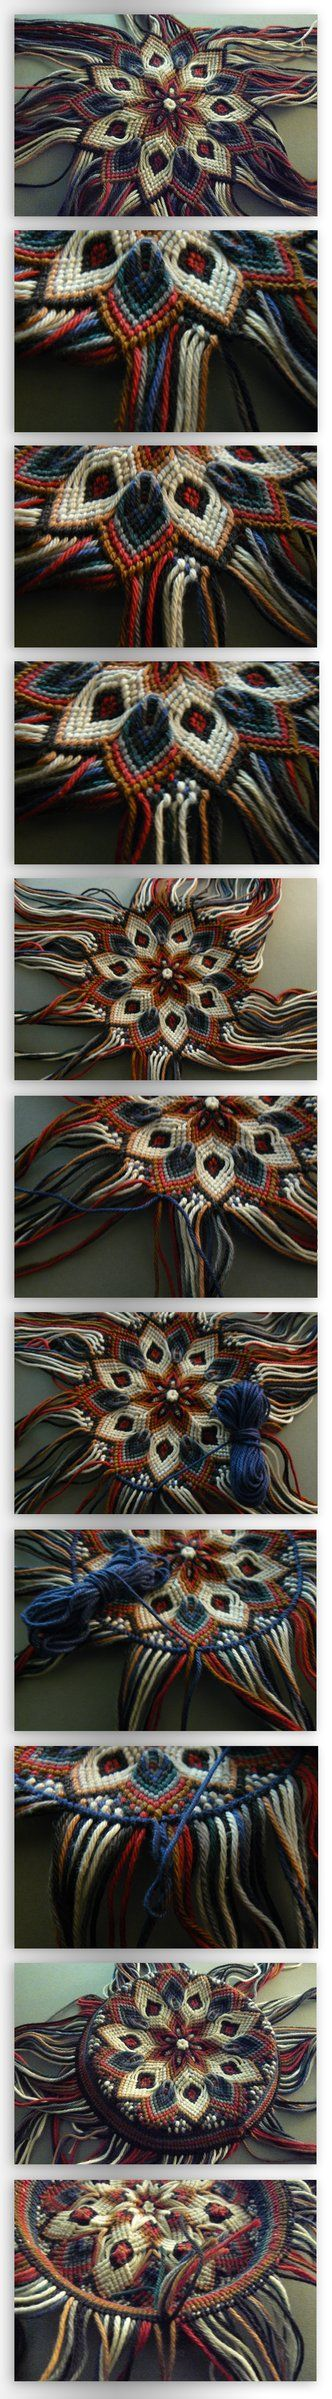 Pouch Tutorial Part III by ~nimuae on deviantART. WHOA nifty.....where do I find directions on how to make this??!!